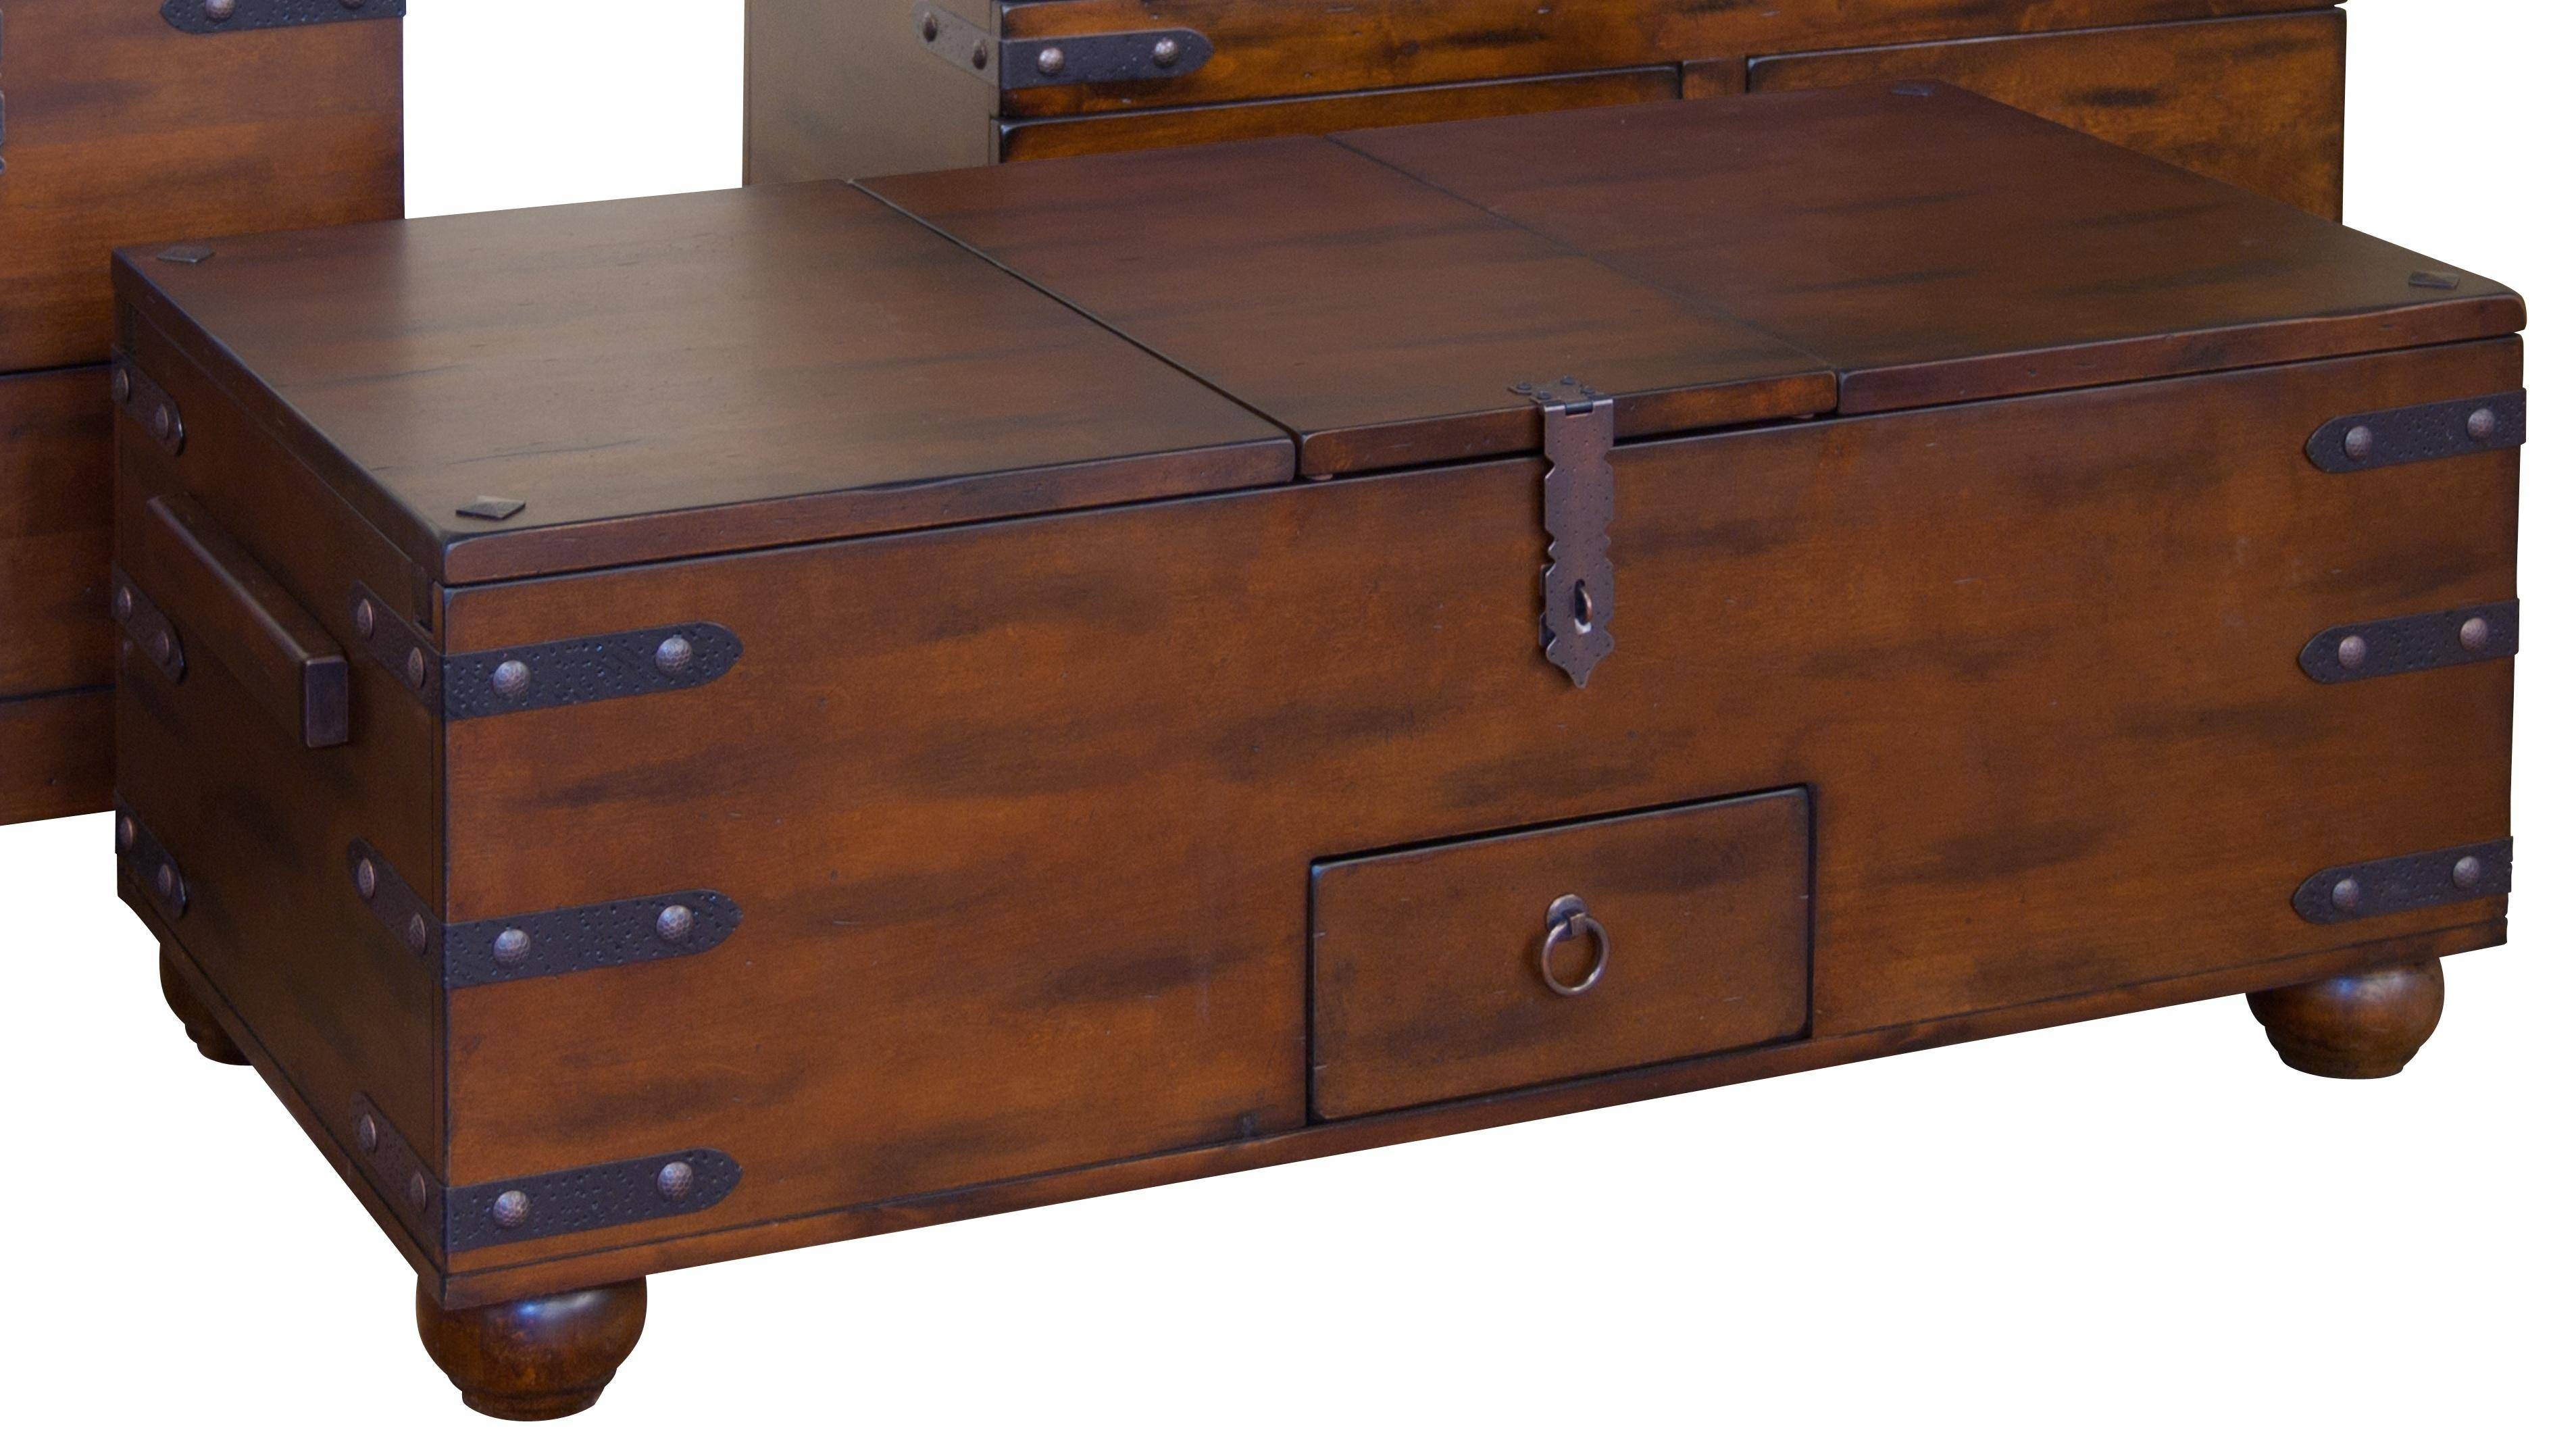 Best Trunk Coffee Table Design | Best Home Decor Inspirations inside Wooden Trunks Coffee Tables (Image 3 of 30)